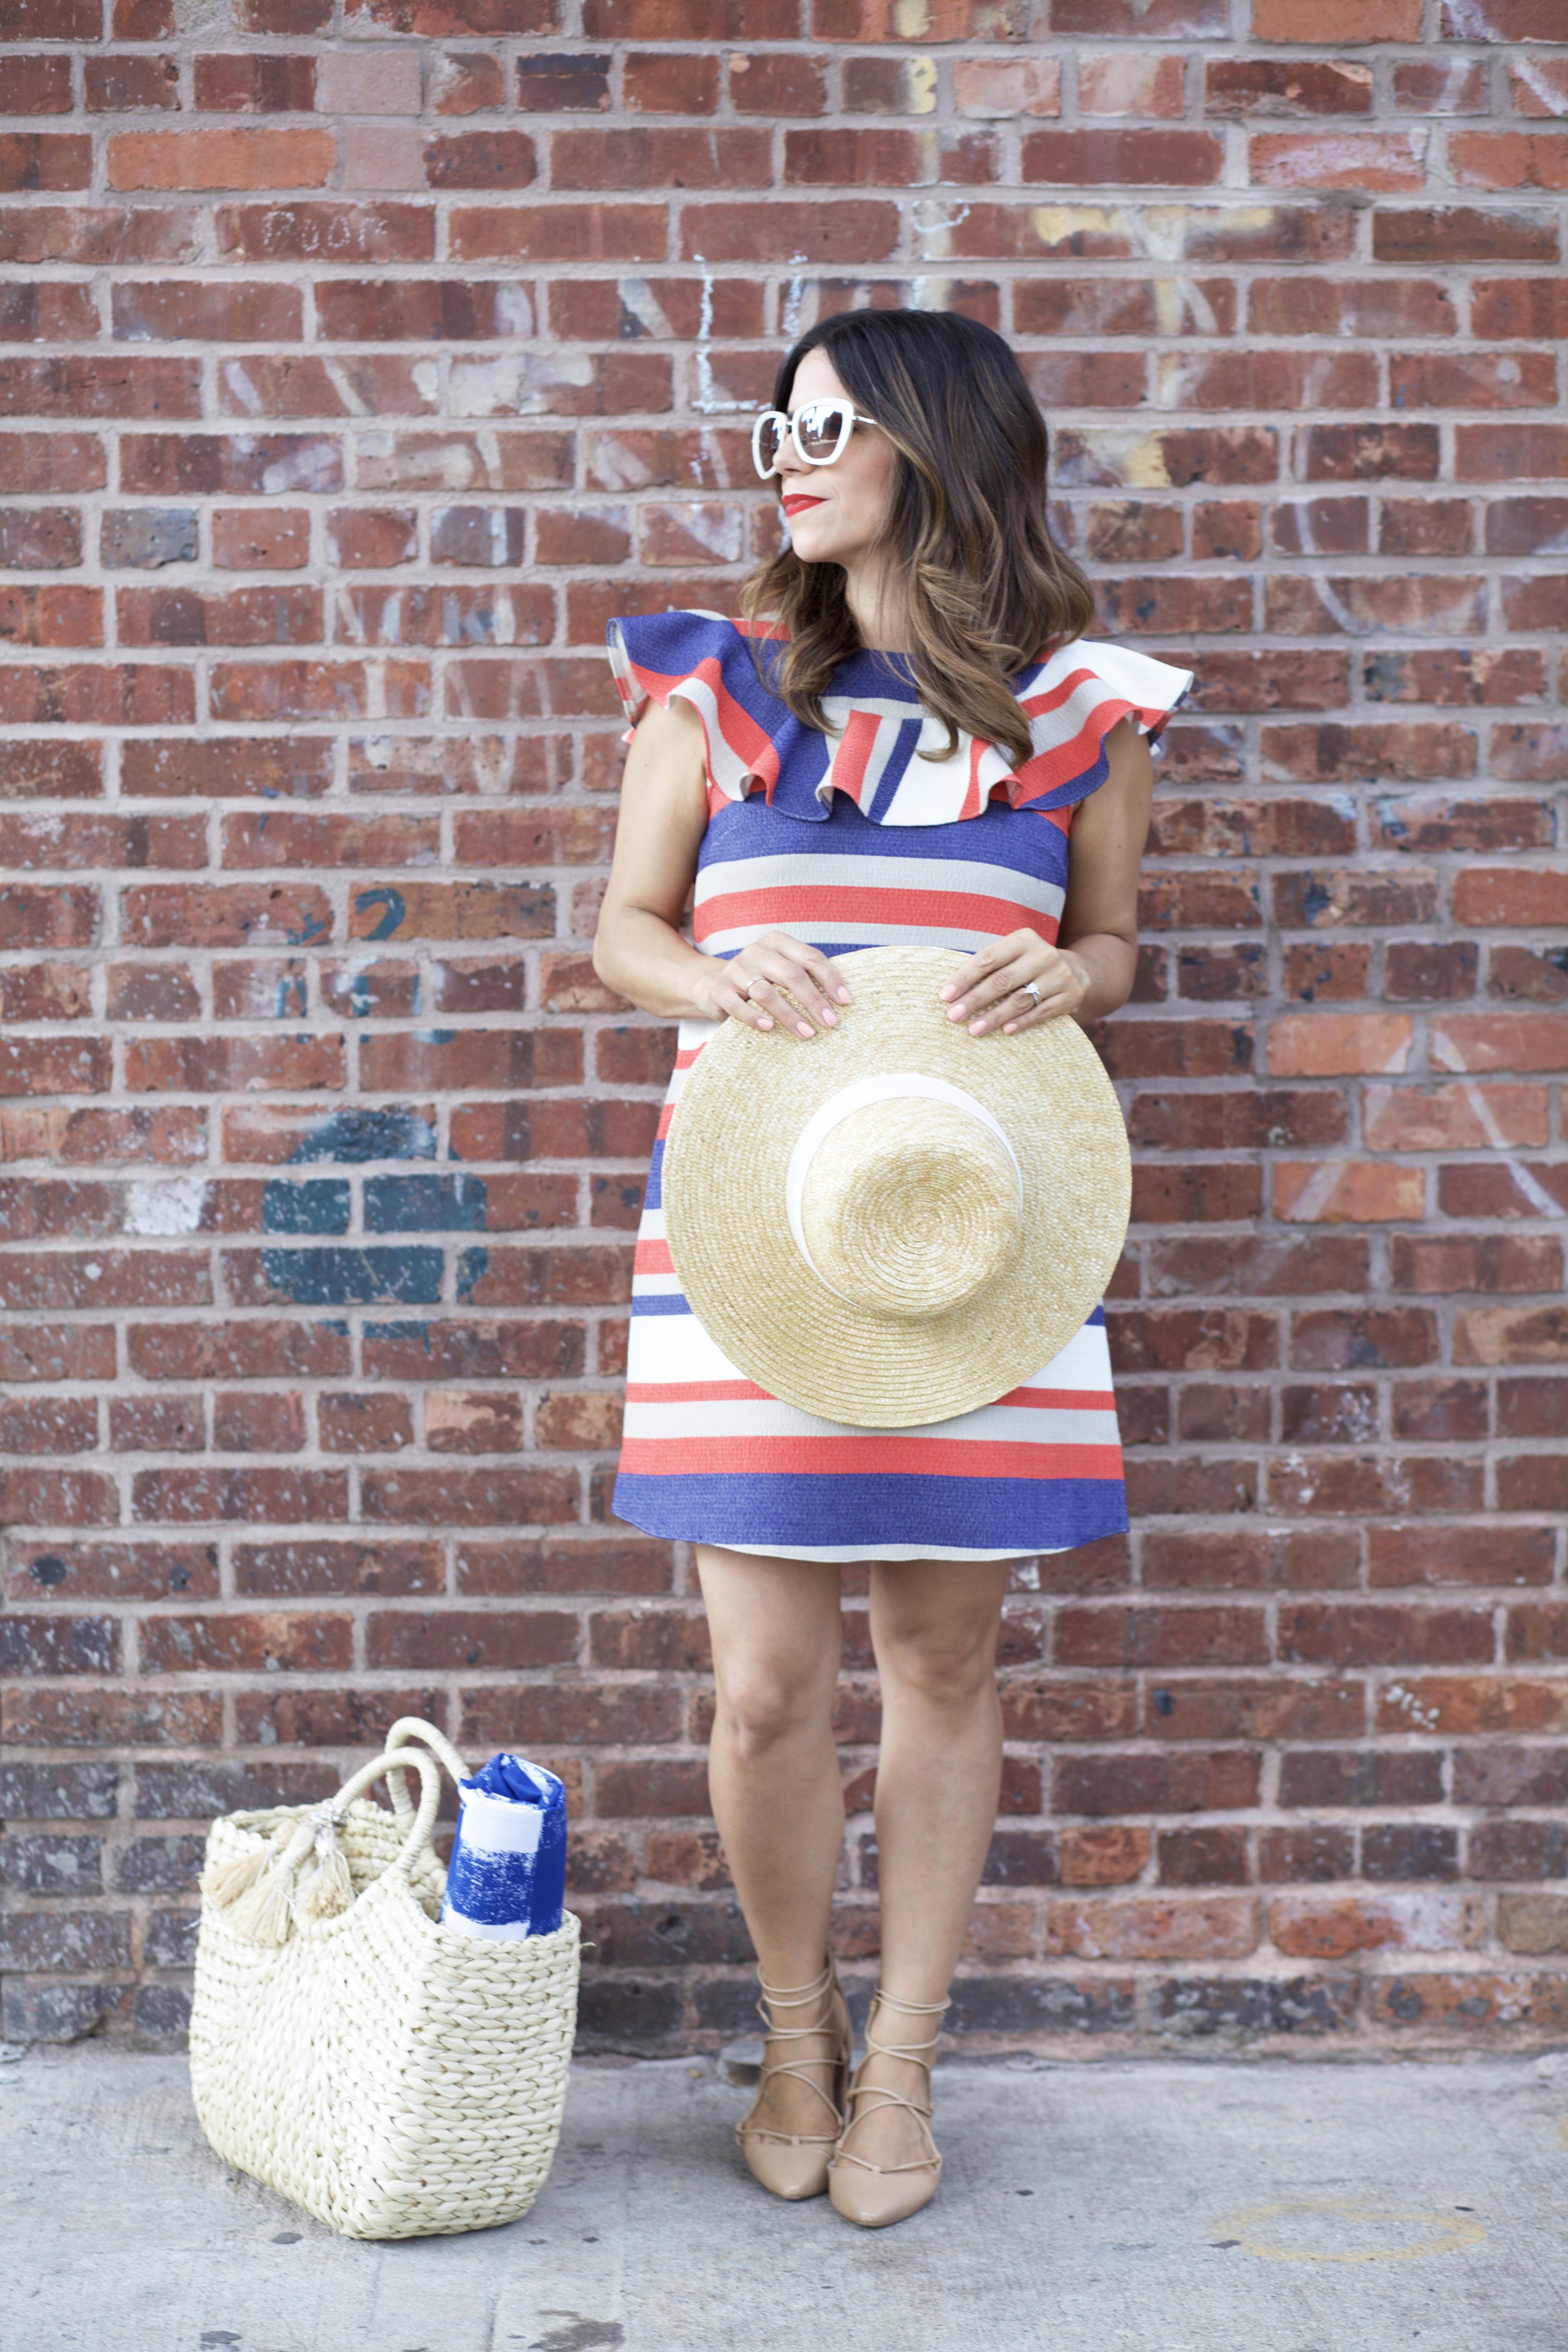 4th of July in New York City DUMBO wearing Red White and Blue dress and straw hat in Summer